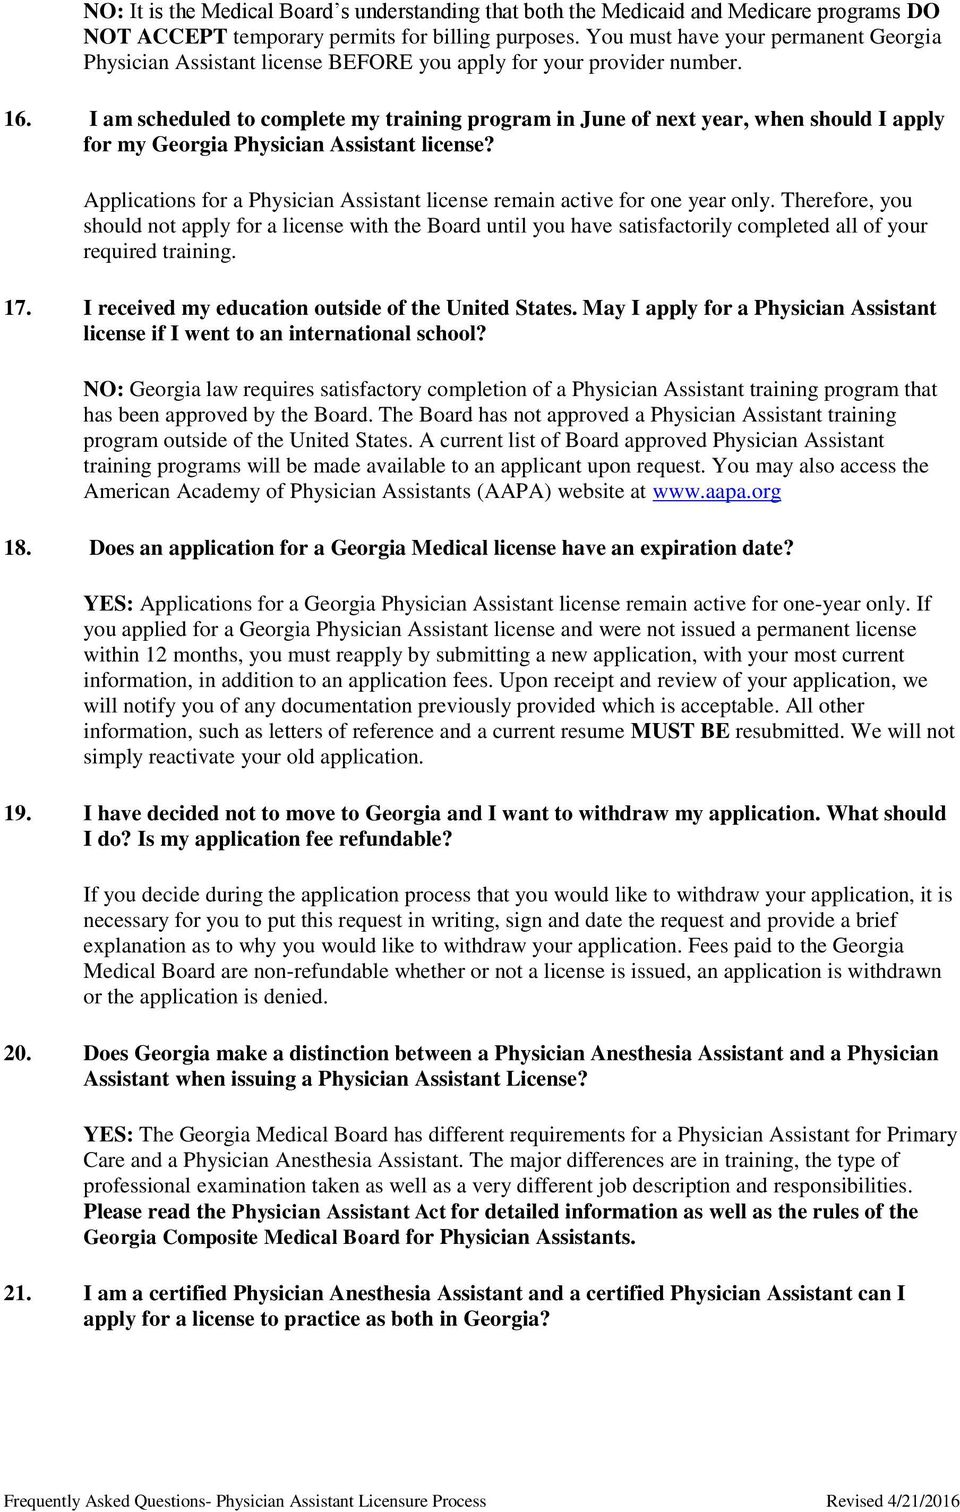 Frequently Asked Questions Physician Assistant Licensure Process Pdf